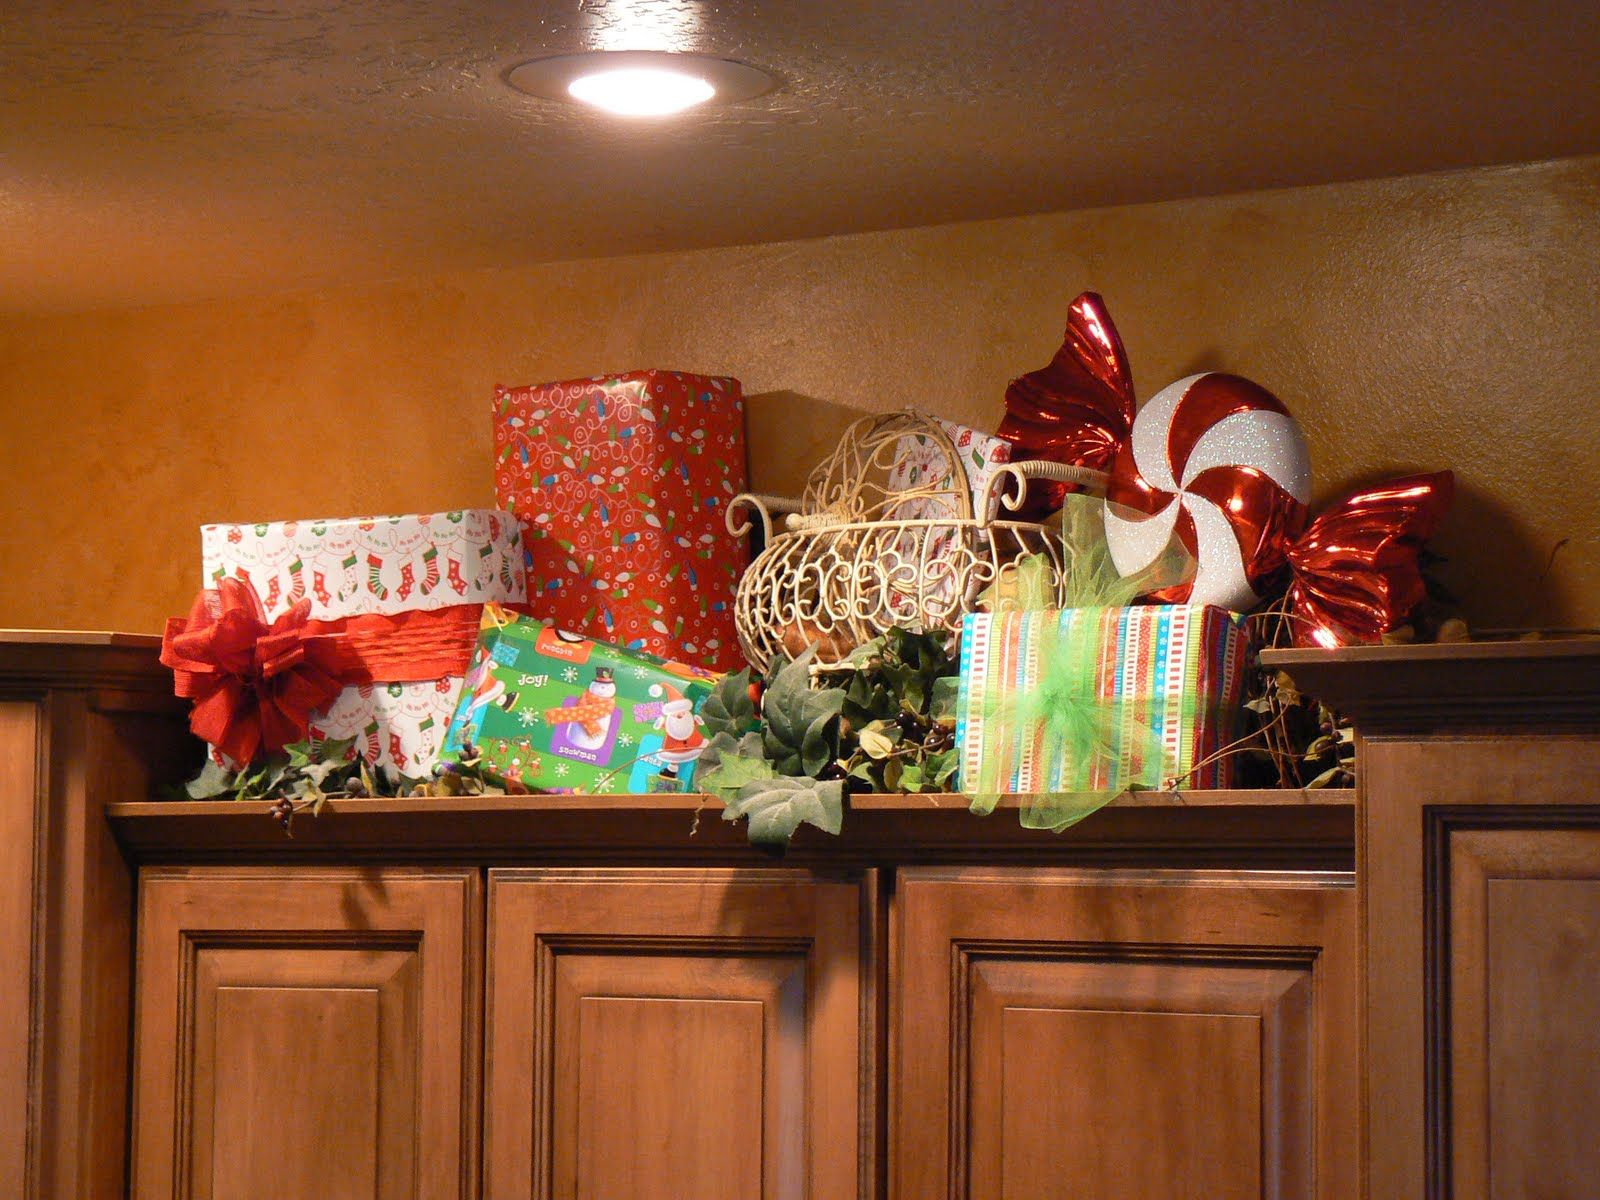 I Don T Put Any Presents Under The Christmas Tree Since I Still Have Little Ones That Might Wan Christmas Kitchen Decor Christmas Decorations Christmas Kitchen